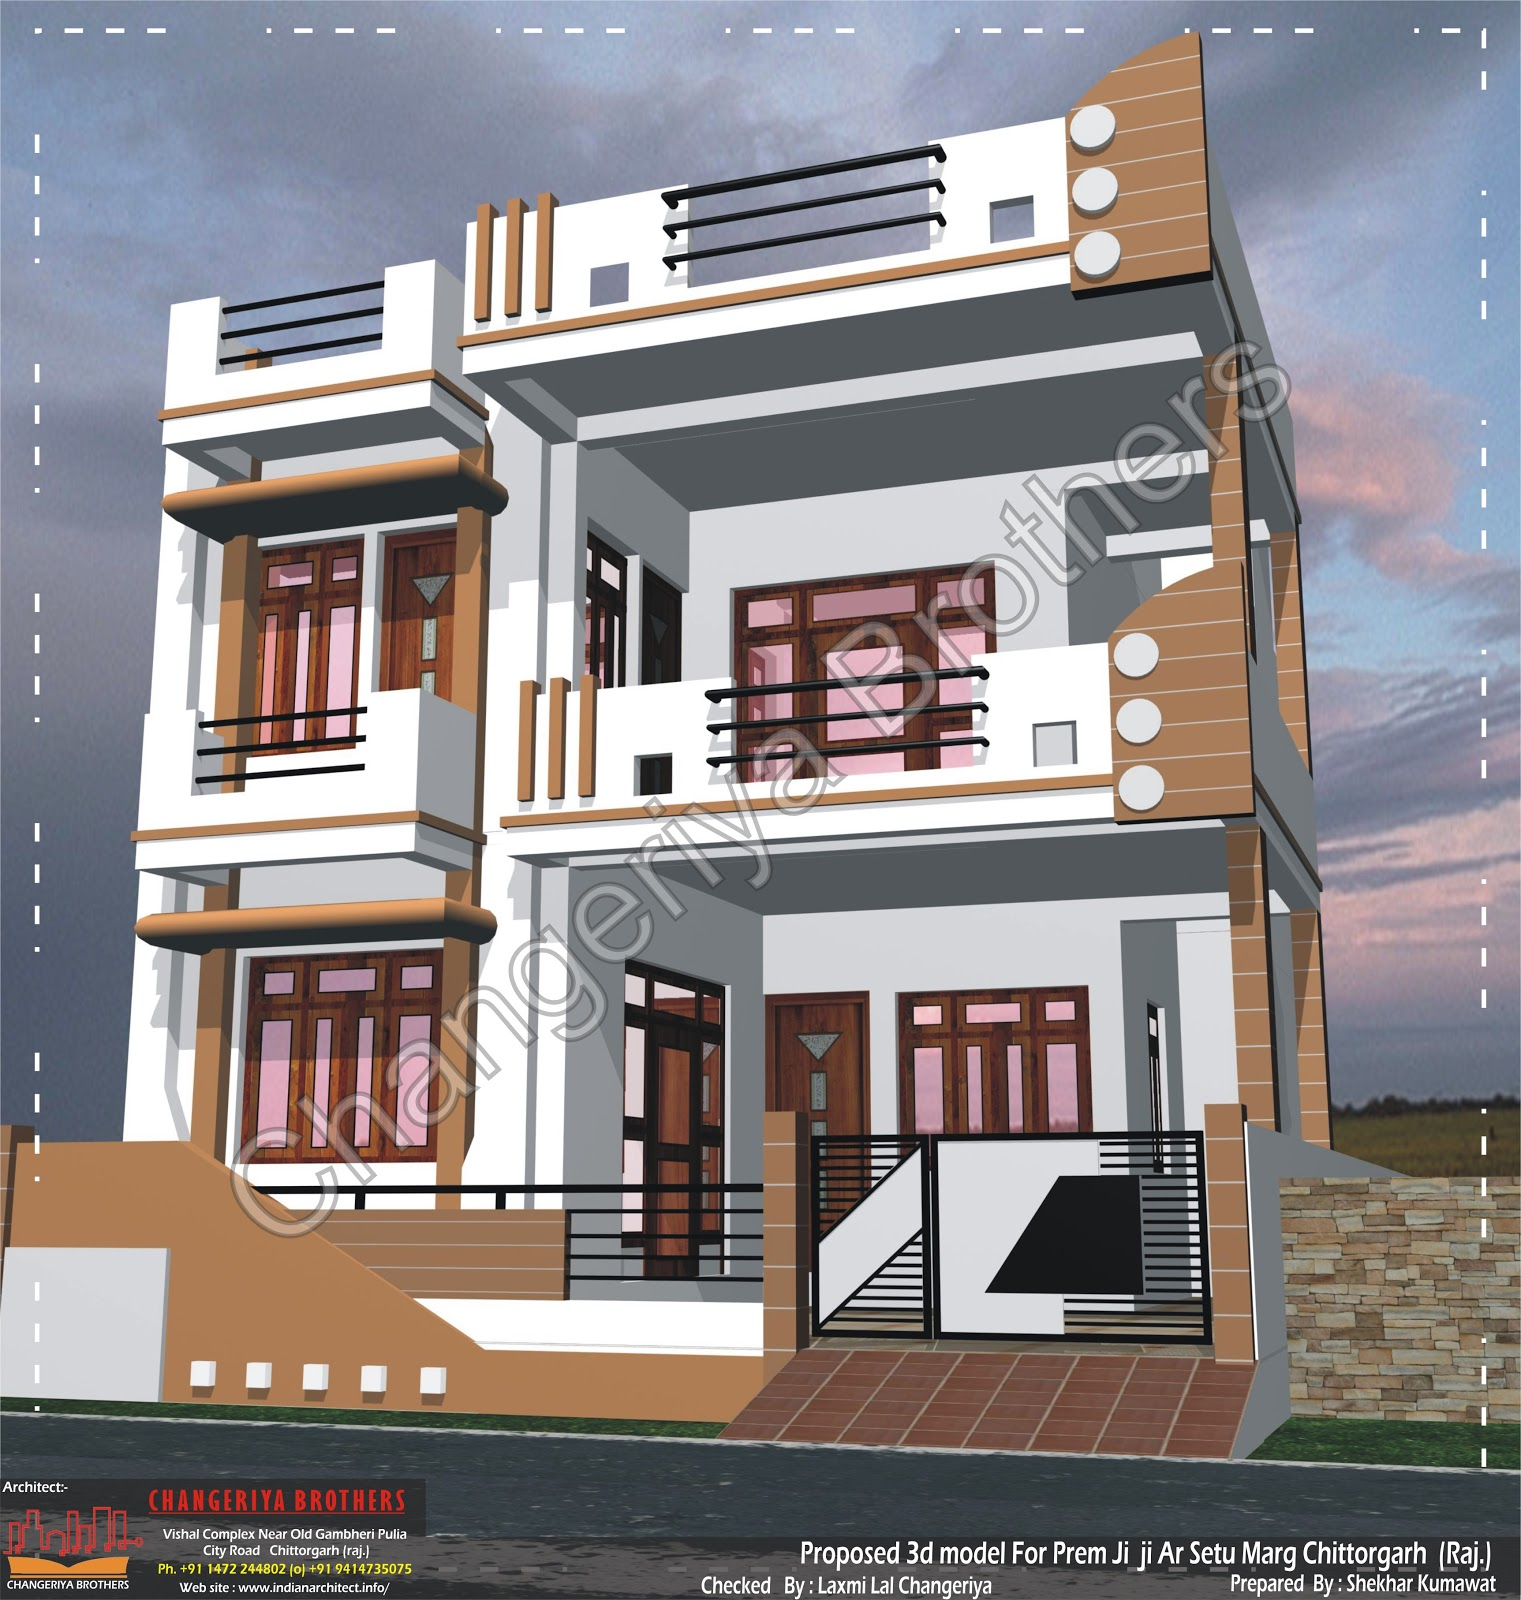 Mr prem ji at chittorgarh 30x60 3d model and project work 30x60 house floor plans